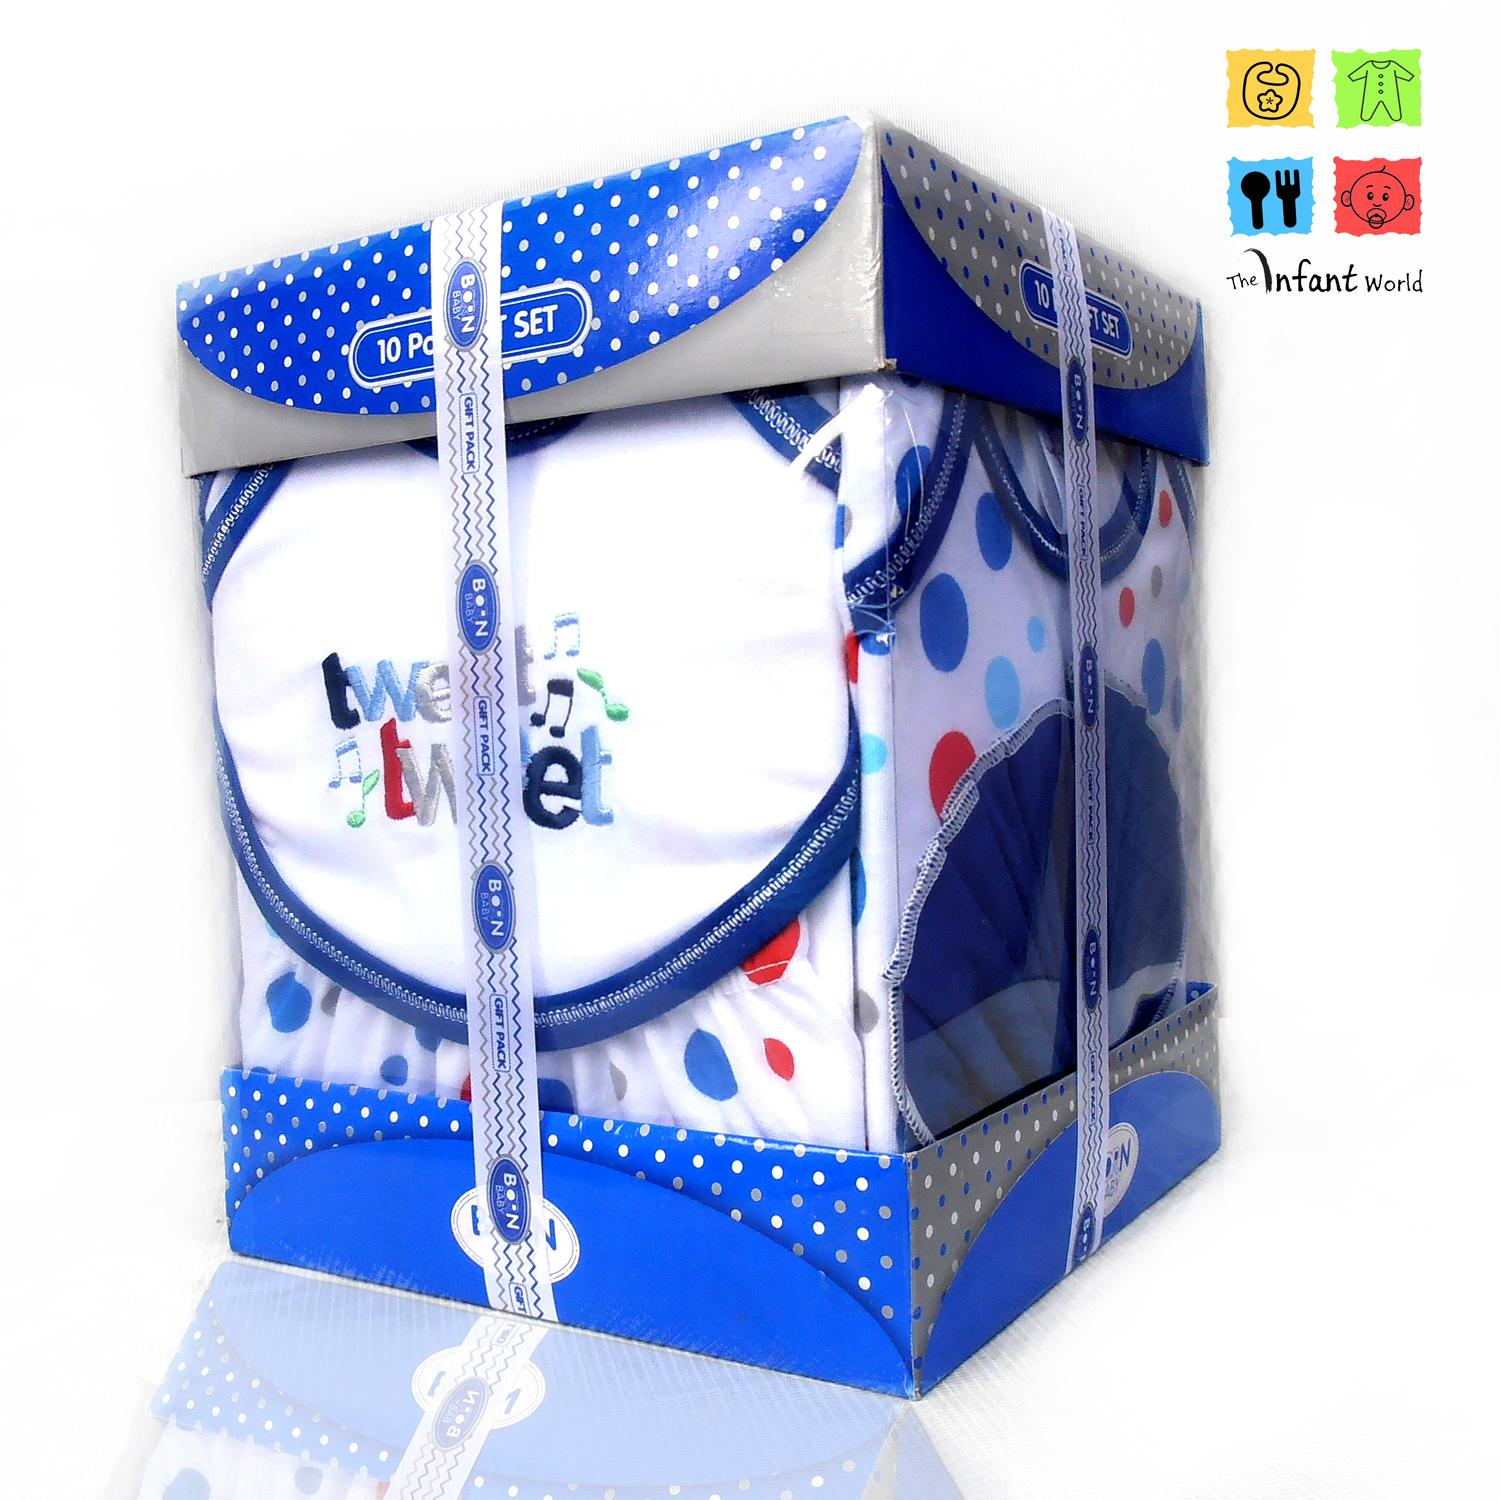 f2677a453e80e 10 Pcs New Born Baby Gift Set  Buy Online at Best Prices in Pakistan ...